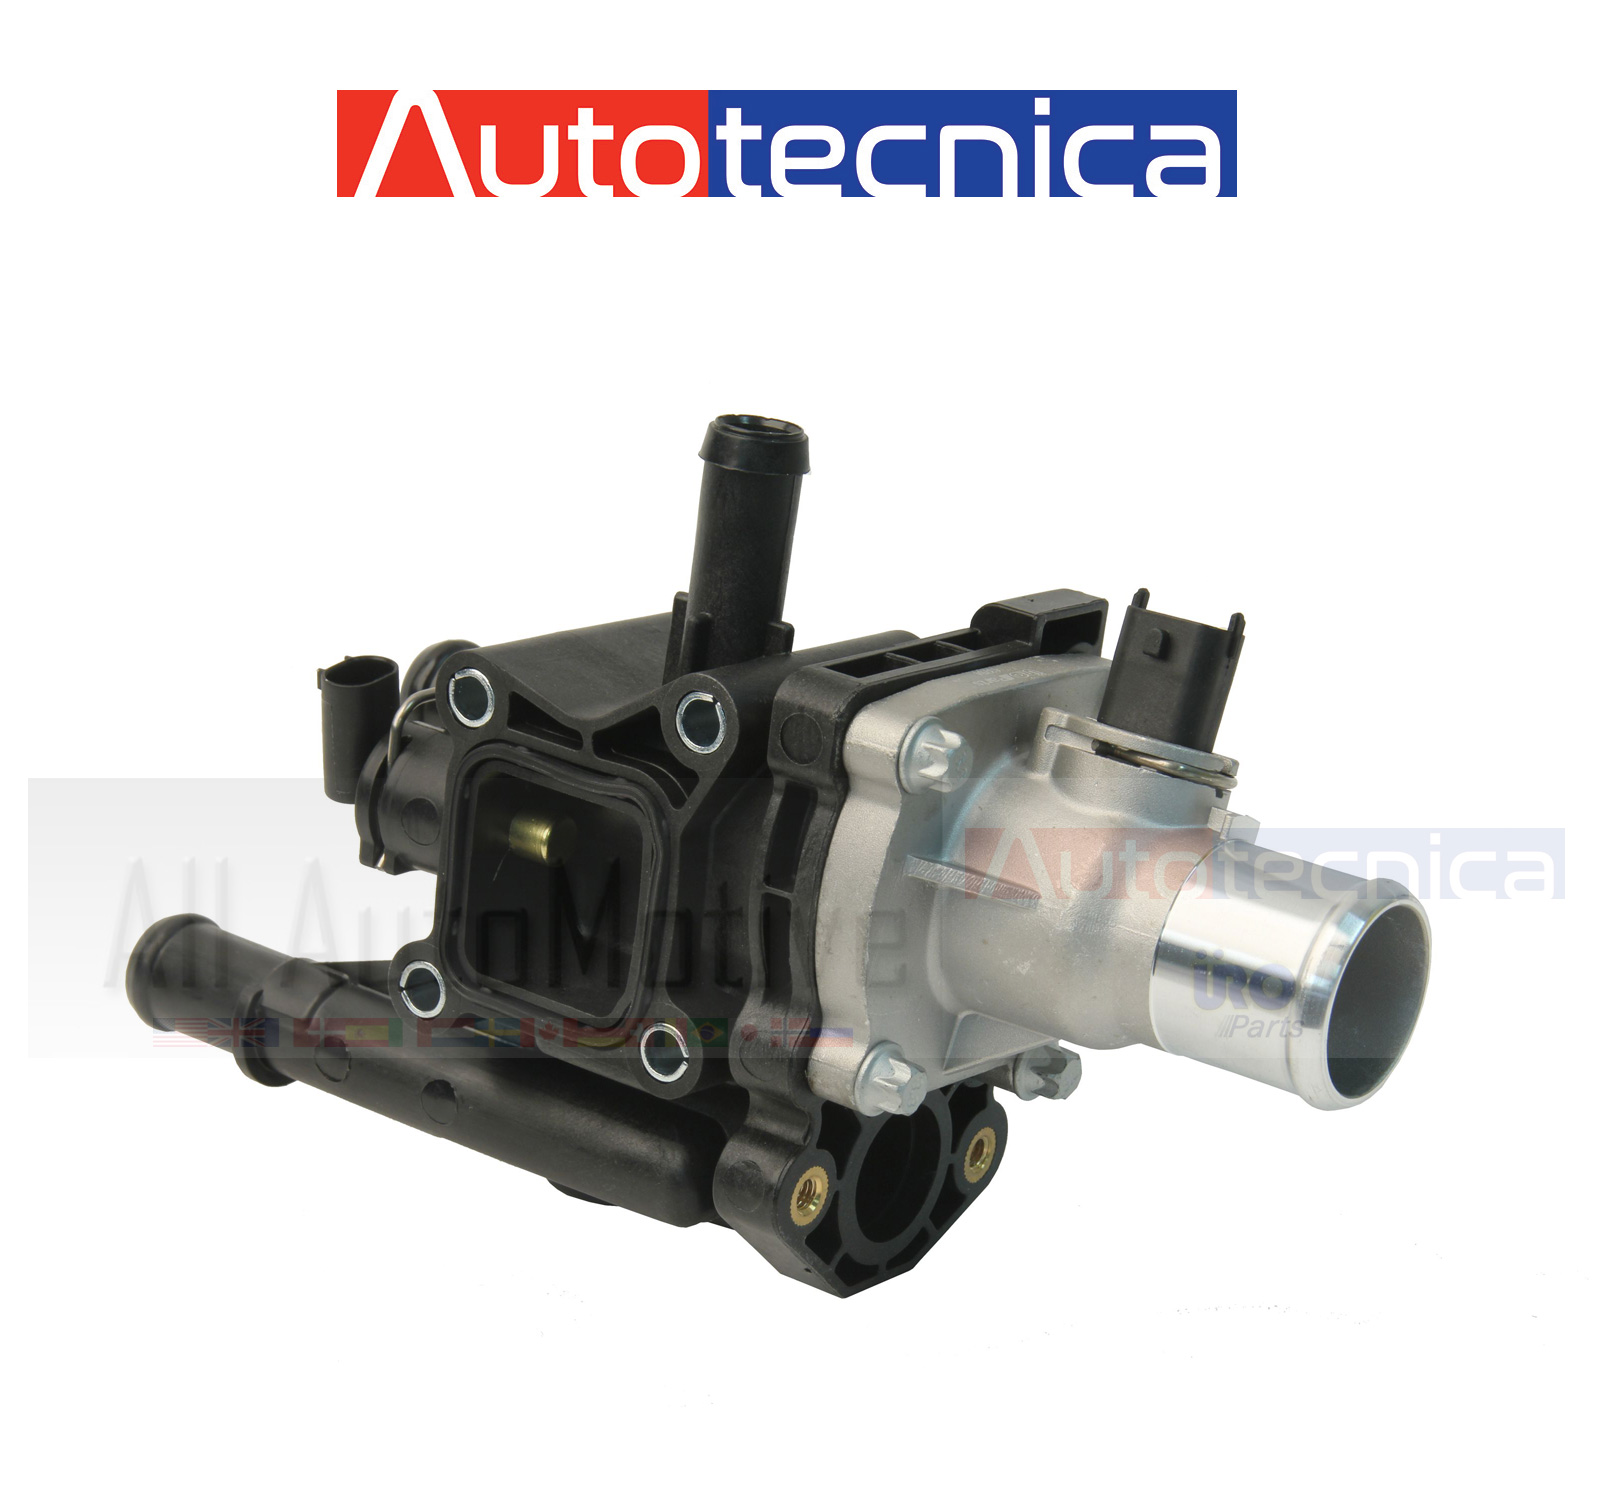 New Engine Coolant Thermostat Assembly For 2012-2018 Chevy Sonic 1.4L 1.6L 1.8L